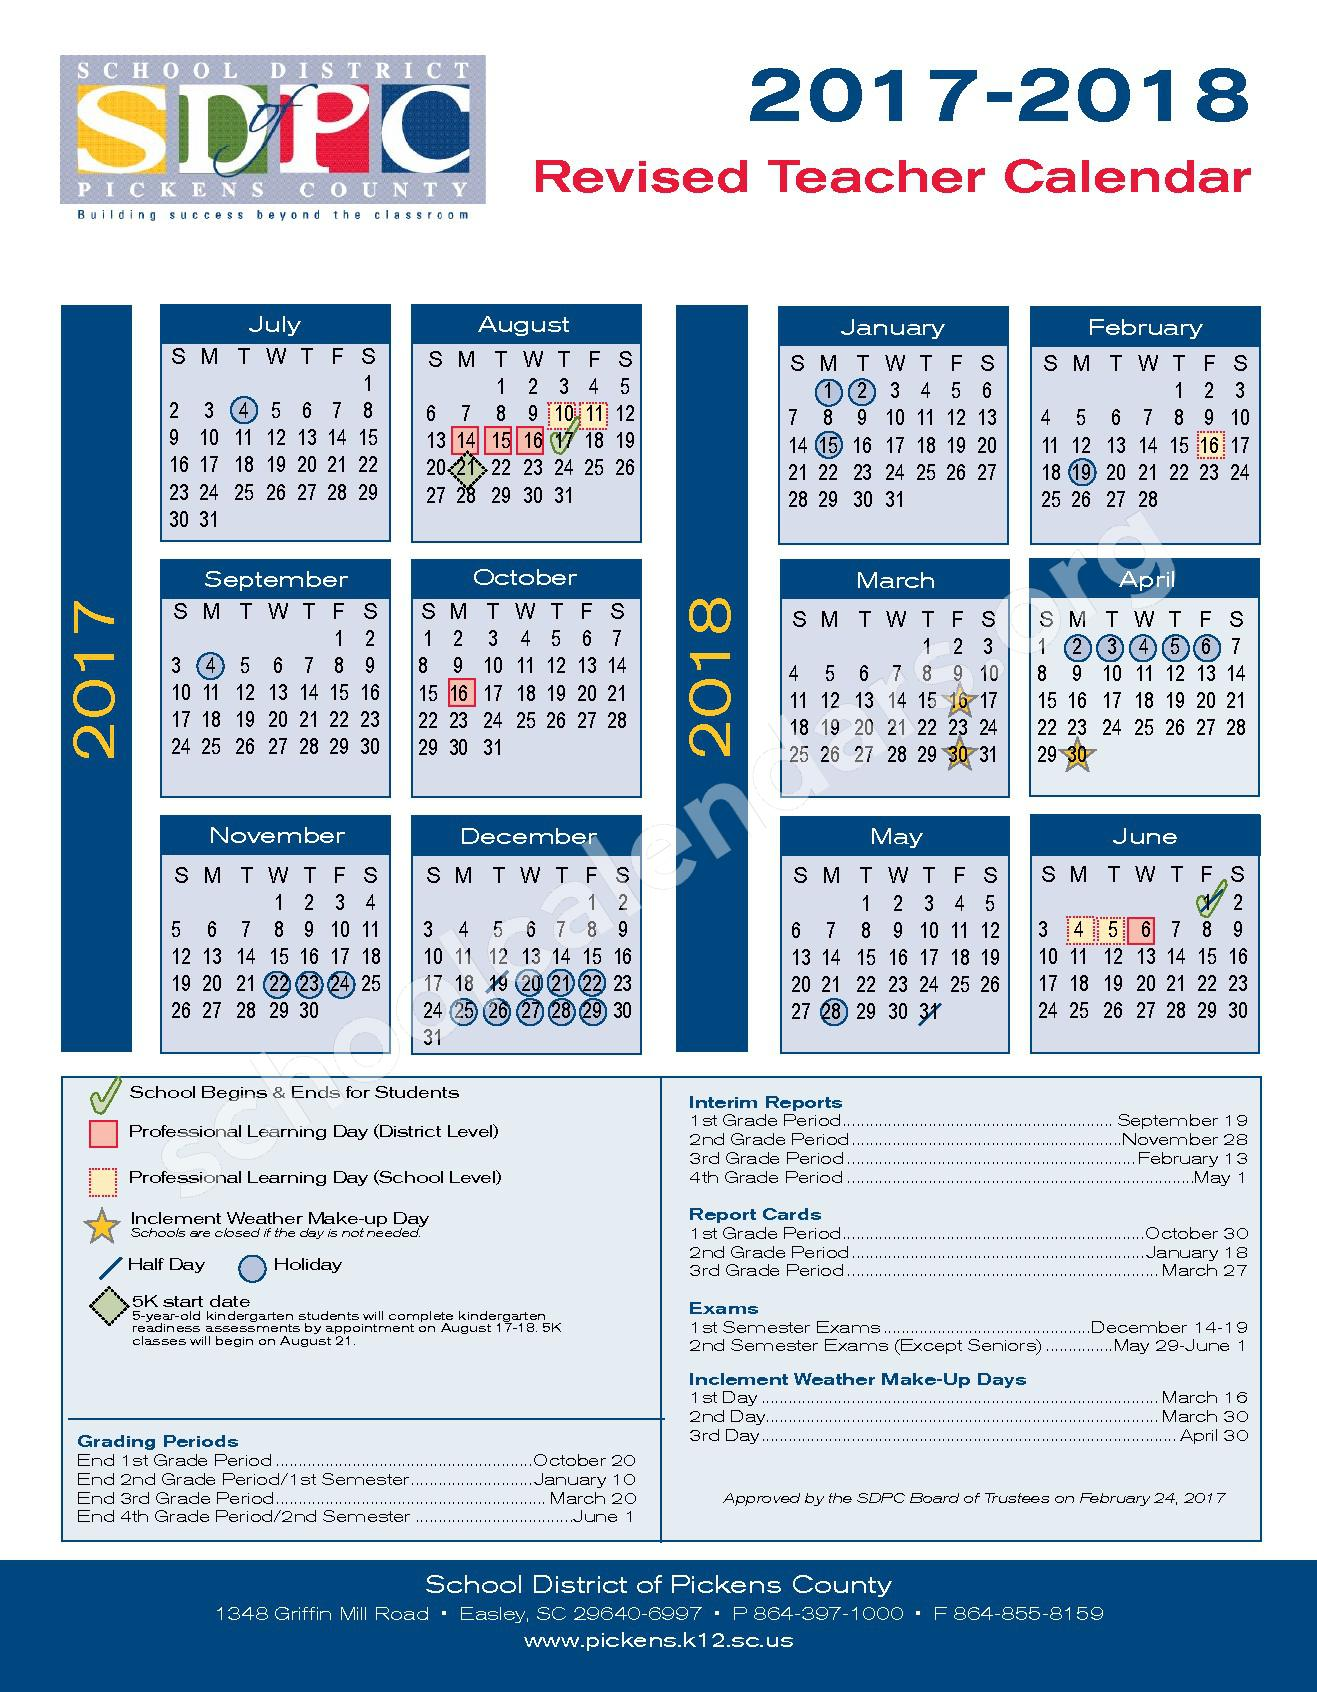 2017 - 2018 Teacher Calendar – Pickens County School District  – page 1